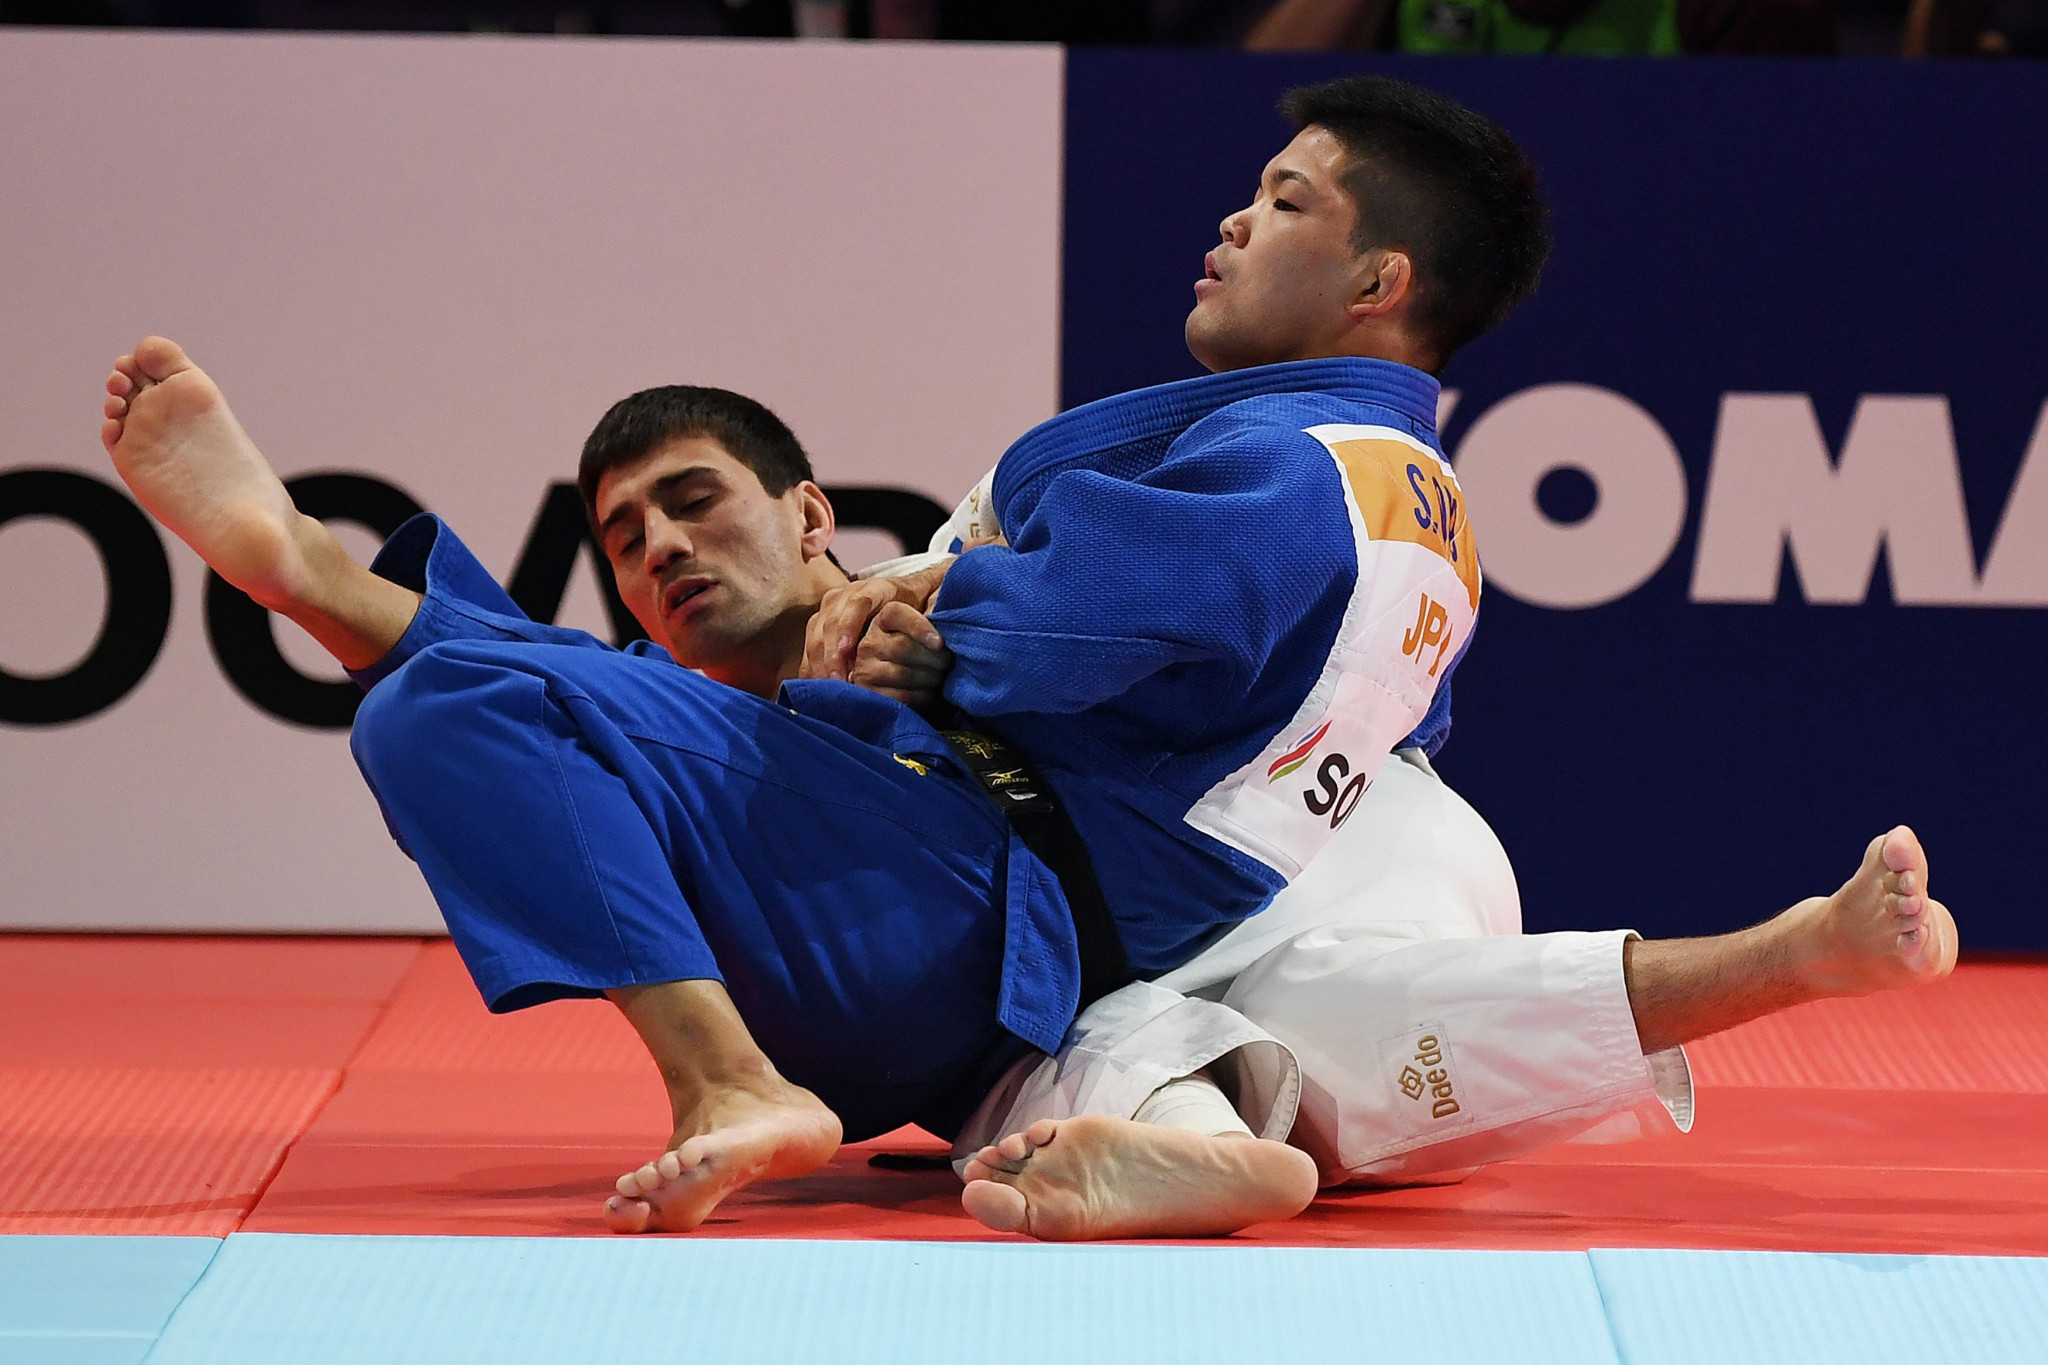 Shohei Ono throws Rustam Orujov on his way to claiming his third World Championship victory ©Getty Images